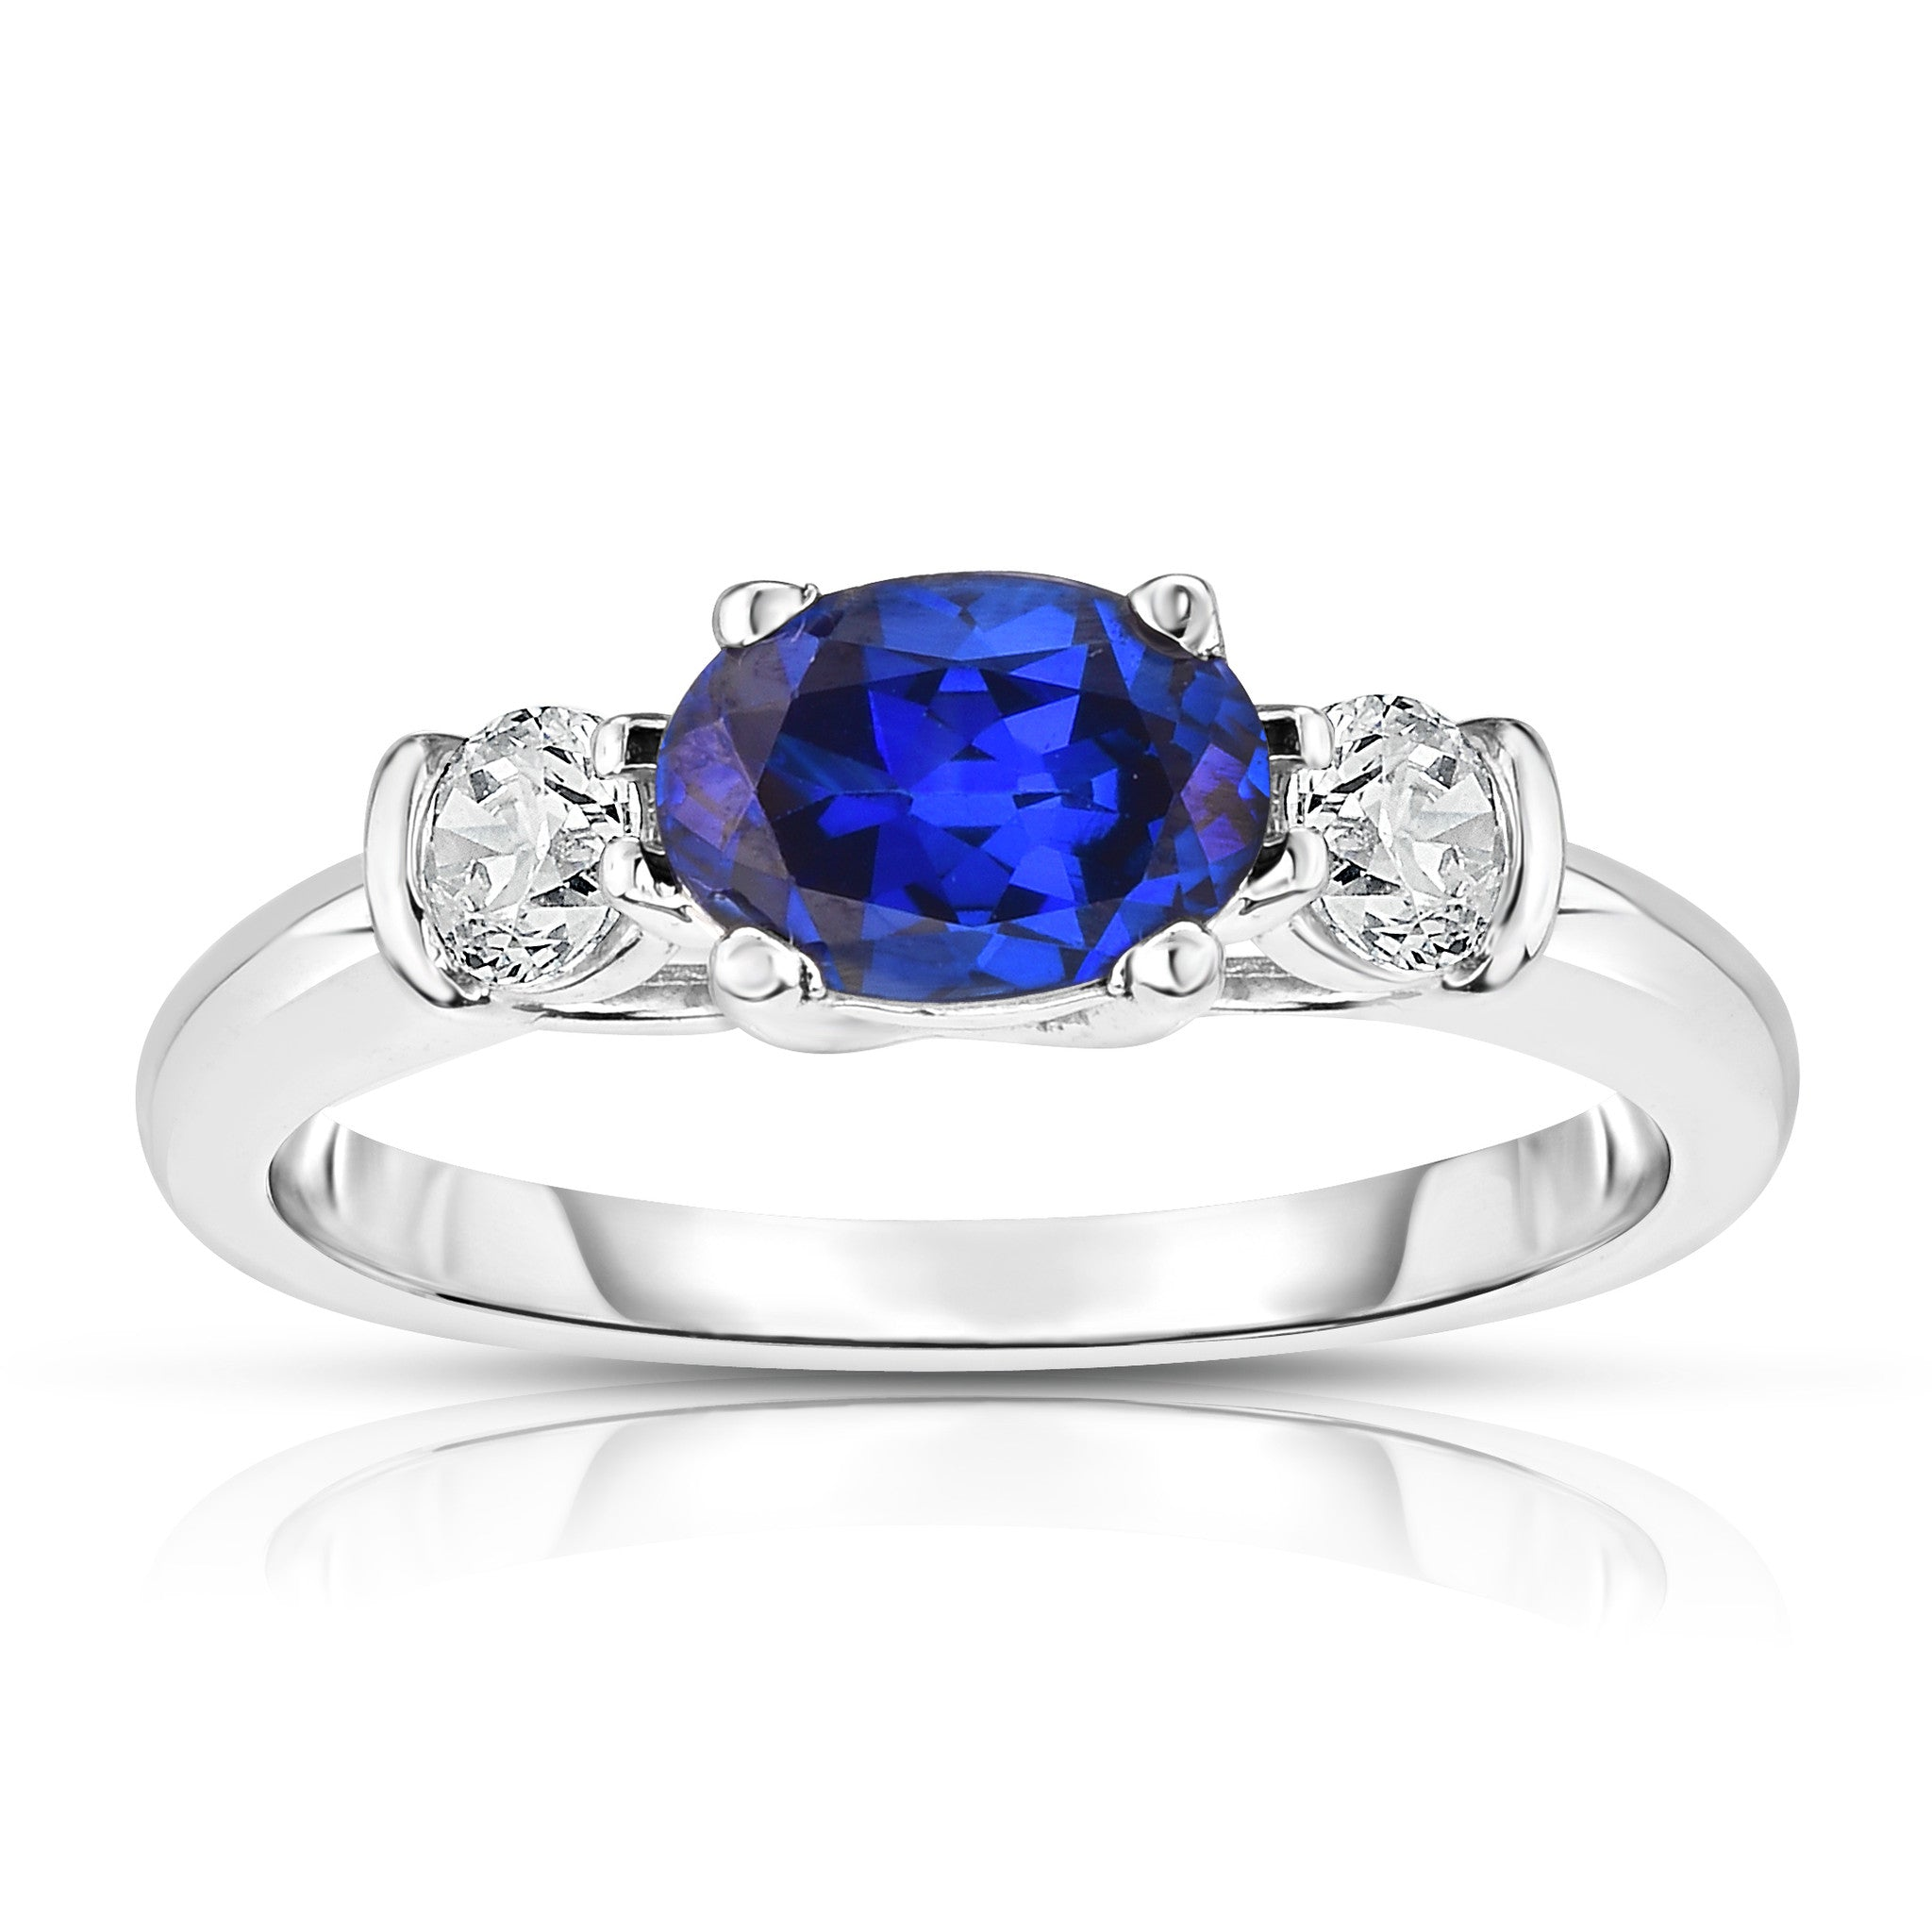 gemstone engagement blog wedding sapphire colored rings heart blue meaning ring the of ritani and